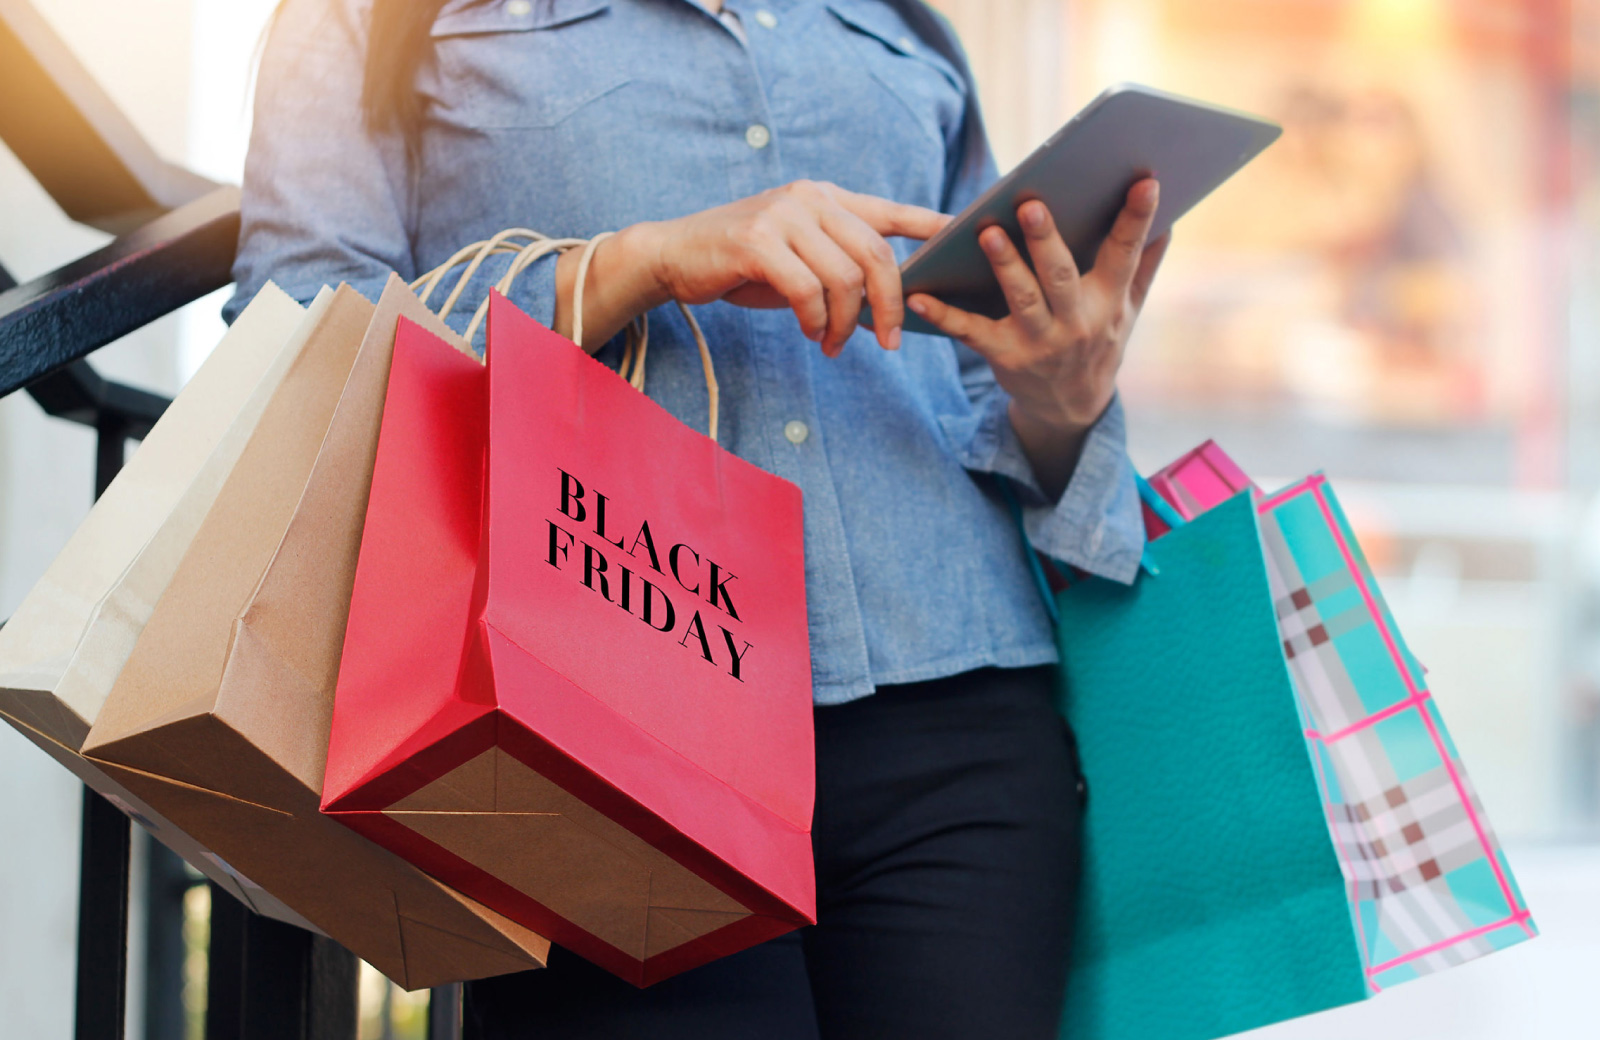 Black Friday Top Deals Where To Get The Best Black Friday Deals In Norwalk